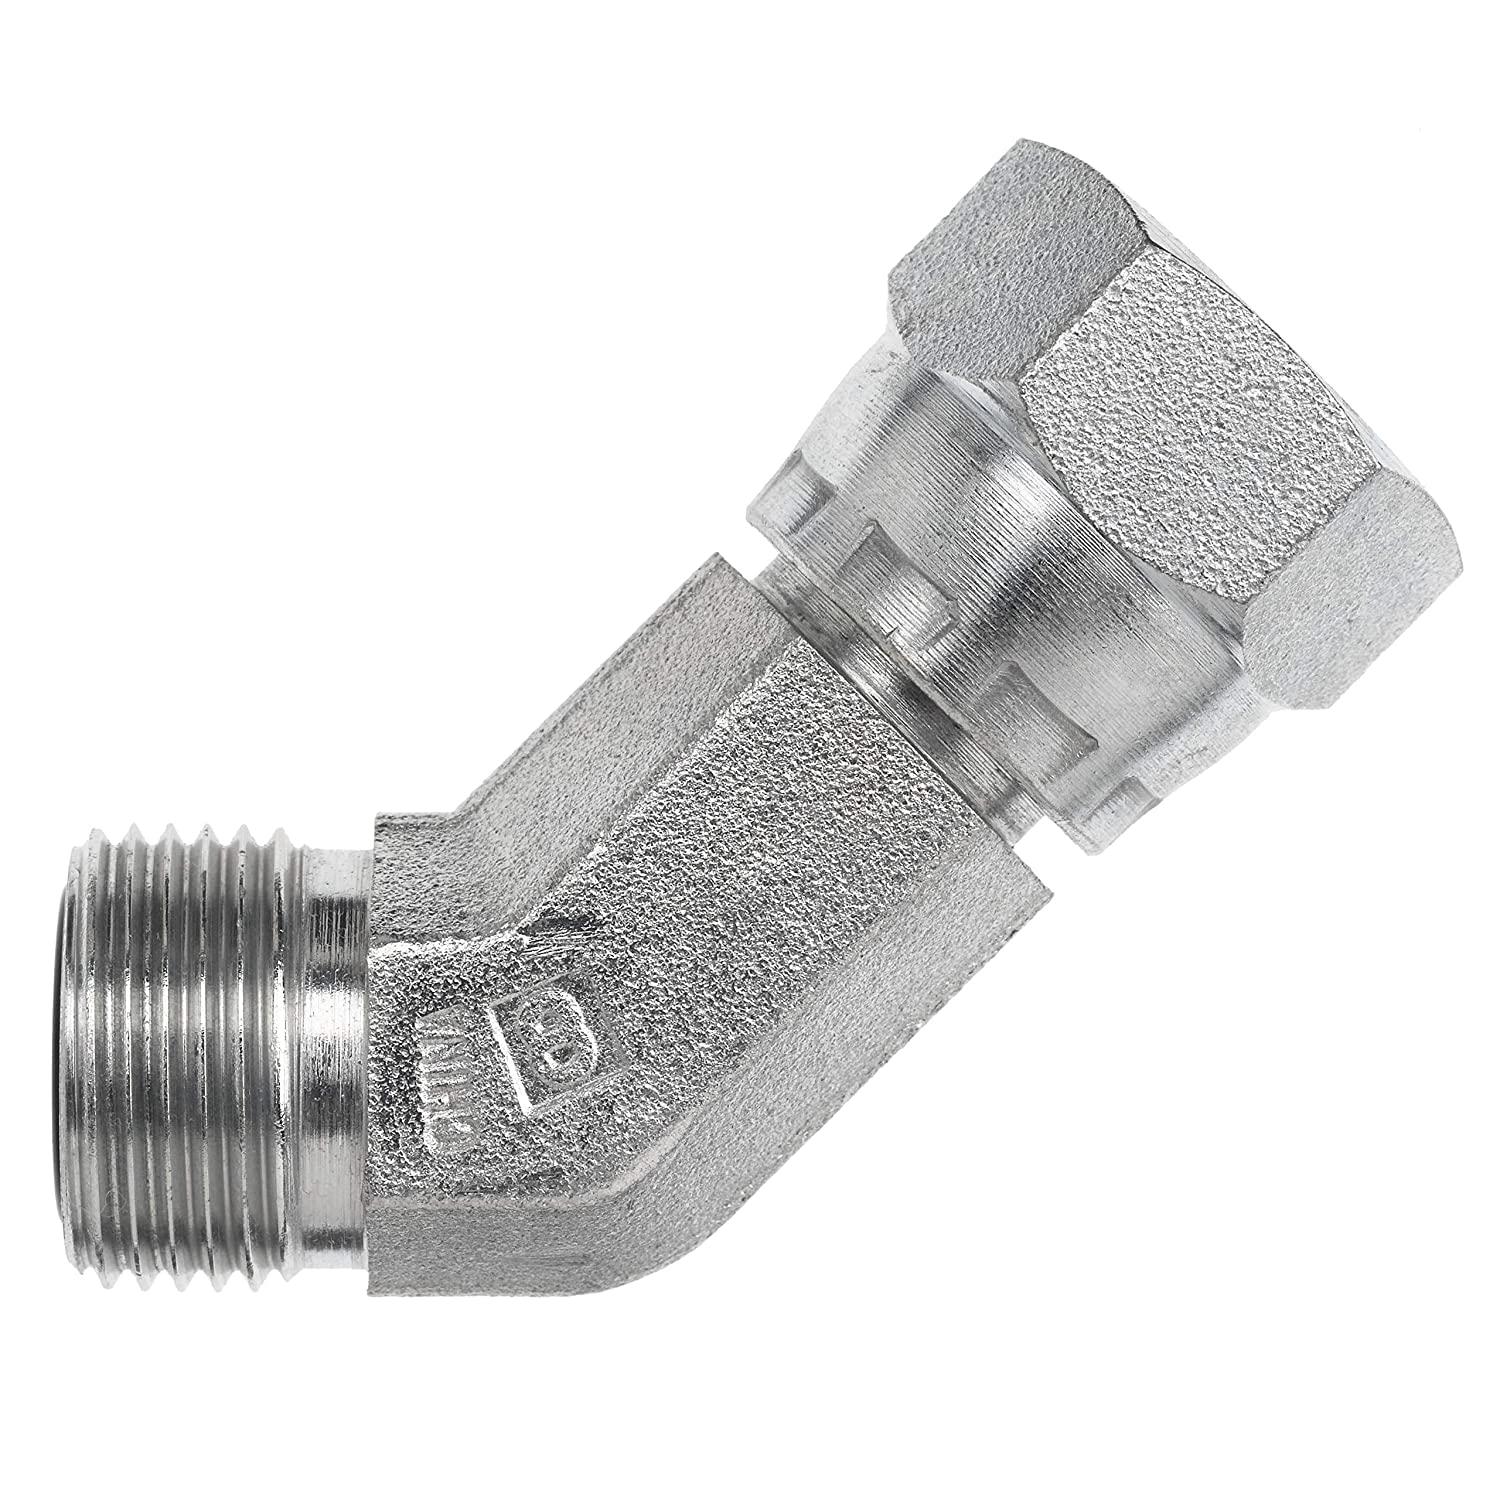 1-14 NPT x 1//14 NPT Thread 5//8 Male Face Seal x 5//8 Female Face Seal Swivel Brennan Industries FS6502-10-10-FG Forged Steel 45 Degree Elbow O-Ring Face Seal Fitting